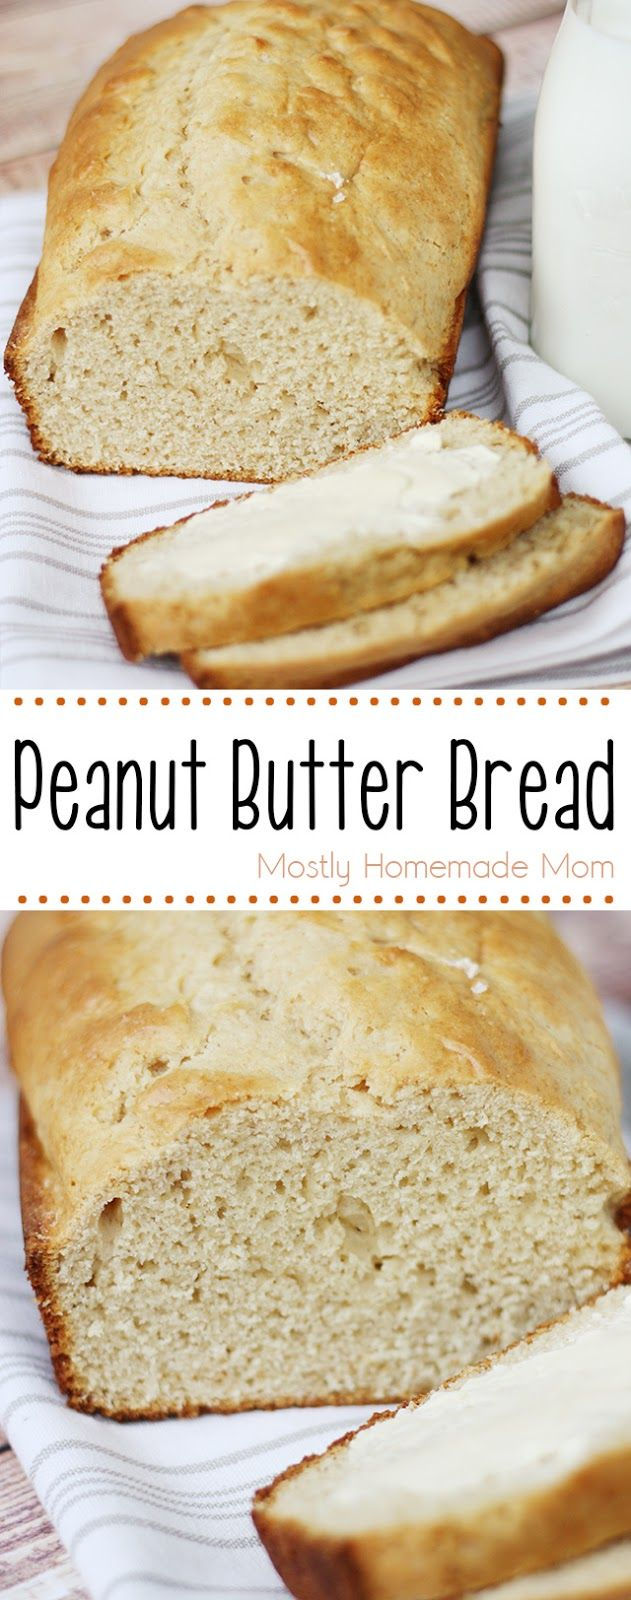 Peanut Butter Bread - perfect for a quick breakfast or brunch! I love one-bowl recipes like this!